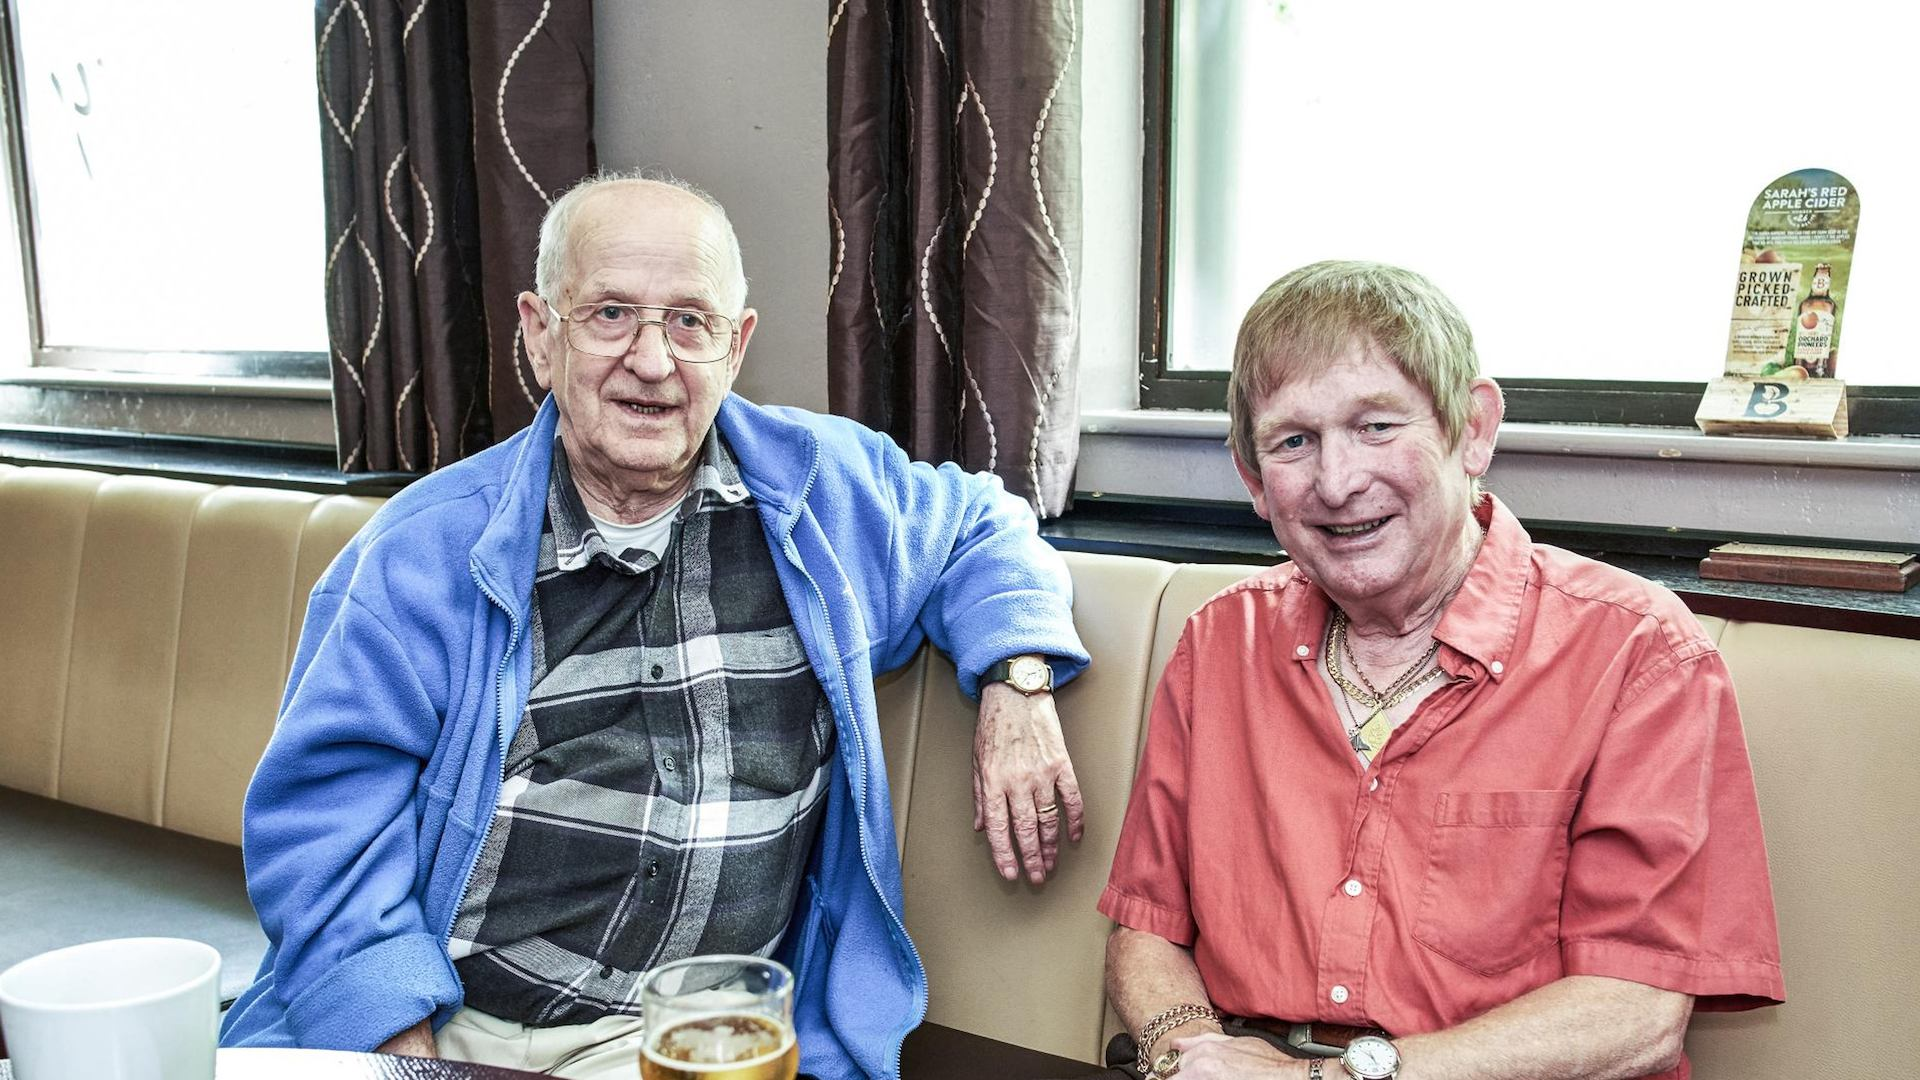 Two older men in a pub